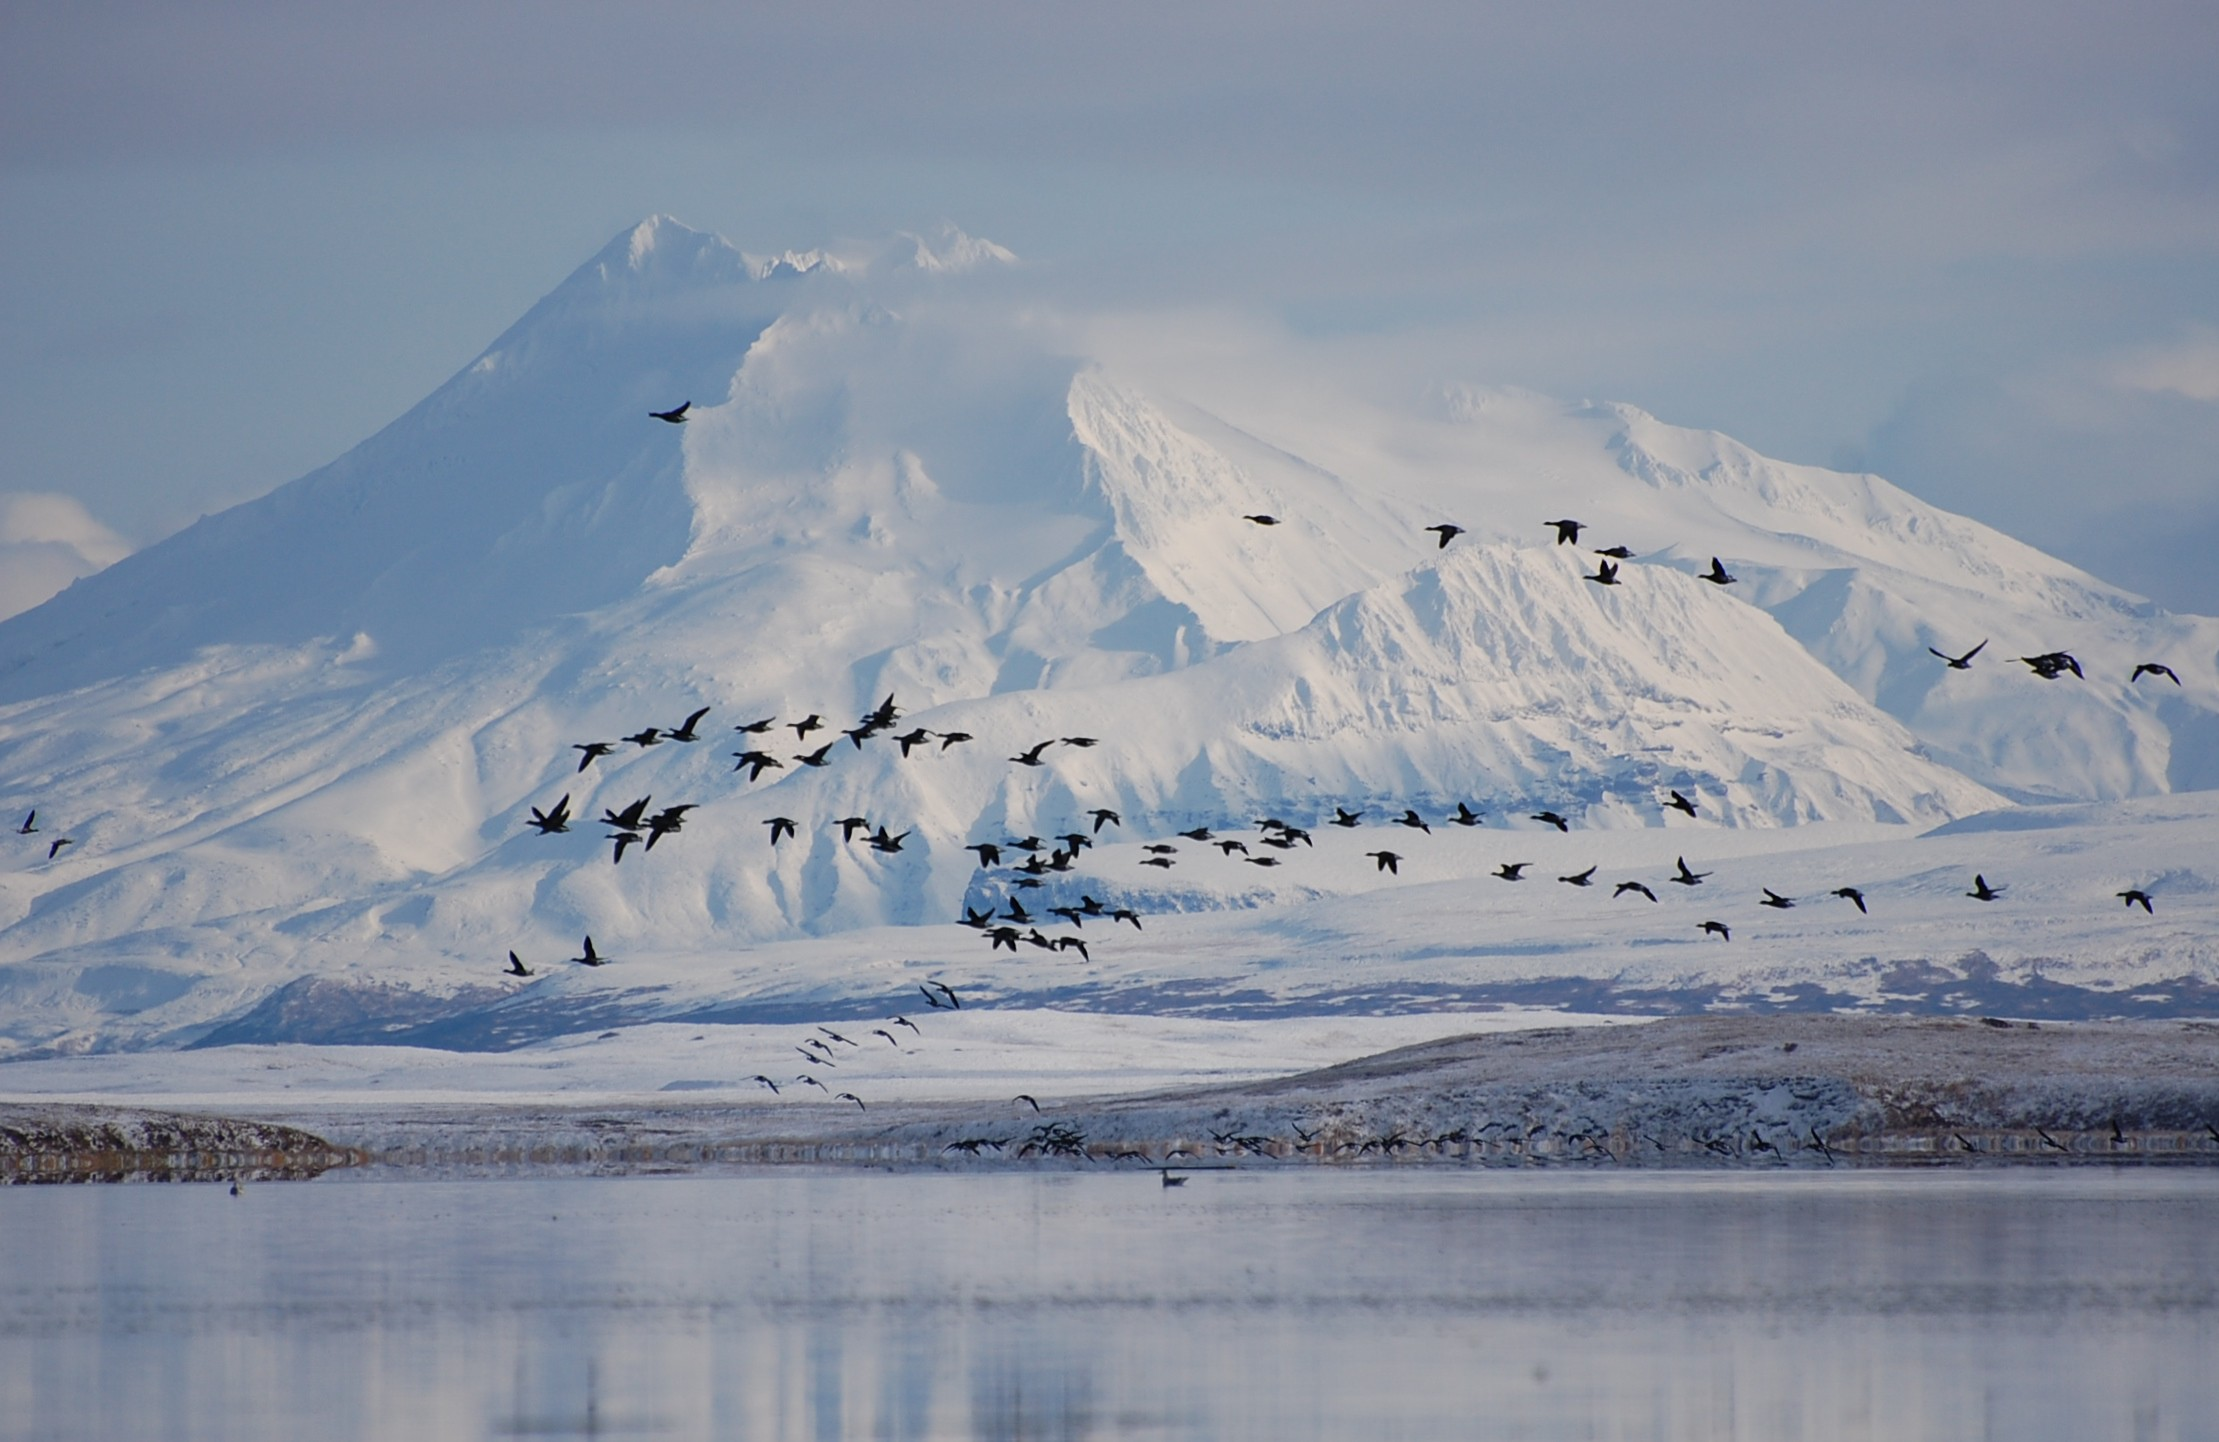 A flock of black brant fly over a body of water with a large snowy mountain in the background